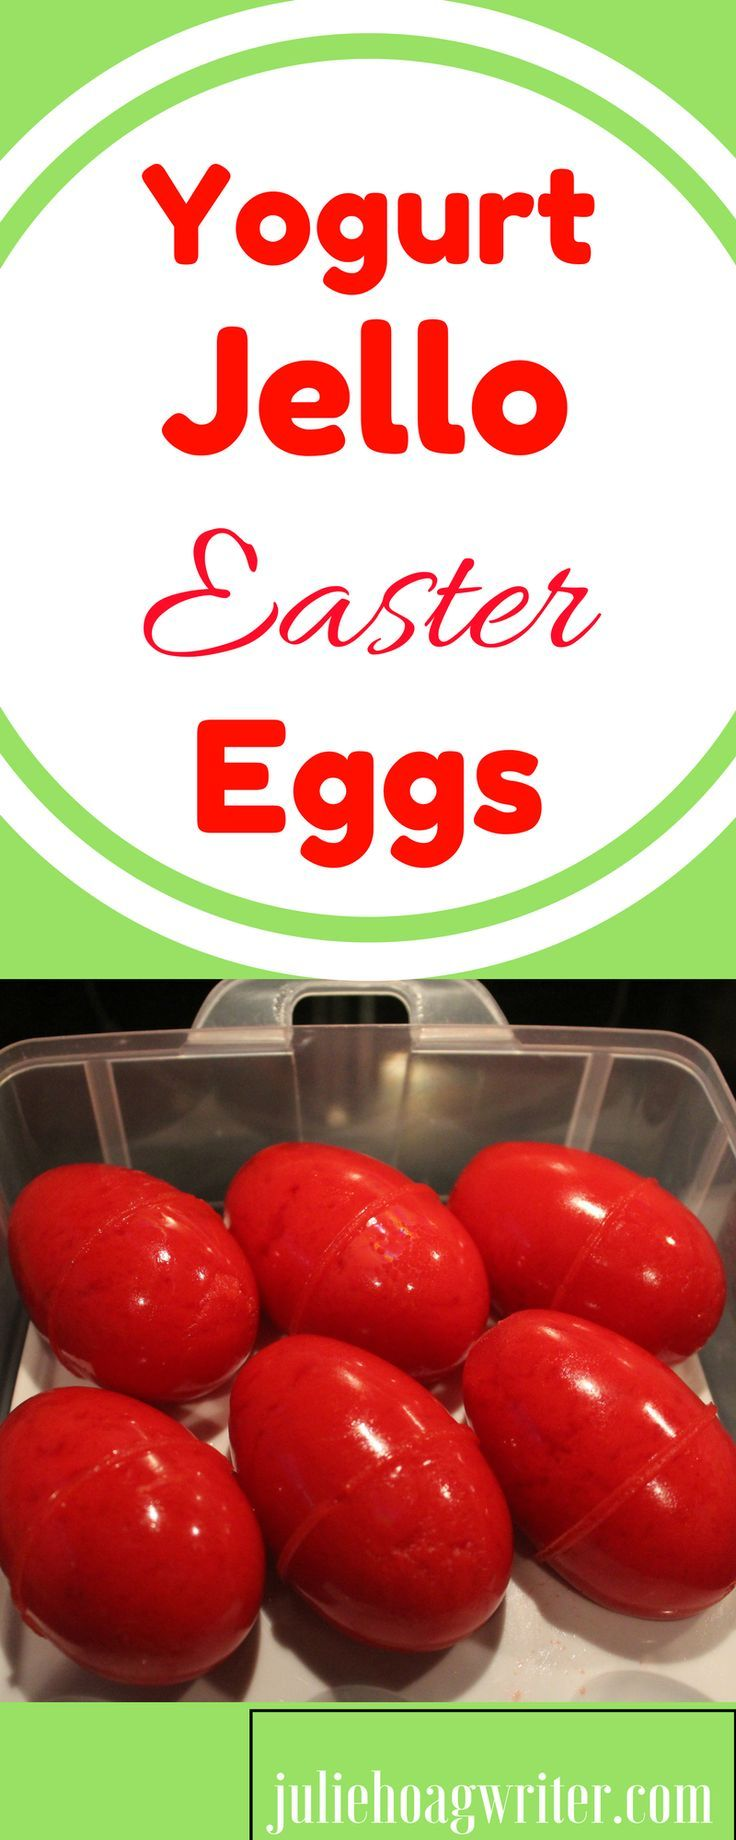 Yogurt Jello Easter Eggs recipe is an easy recipe your family will enjoy on Easter. This is a super easy recipe that will add some fun color and tasty flavor to your Easter holiday spread. Add this to your table and your kids will gobble them up. They del